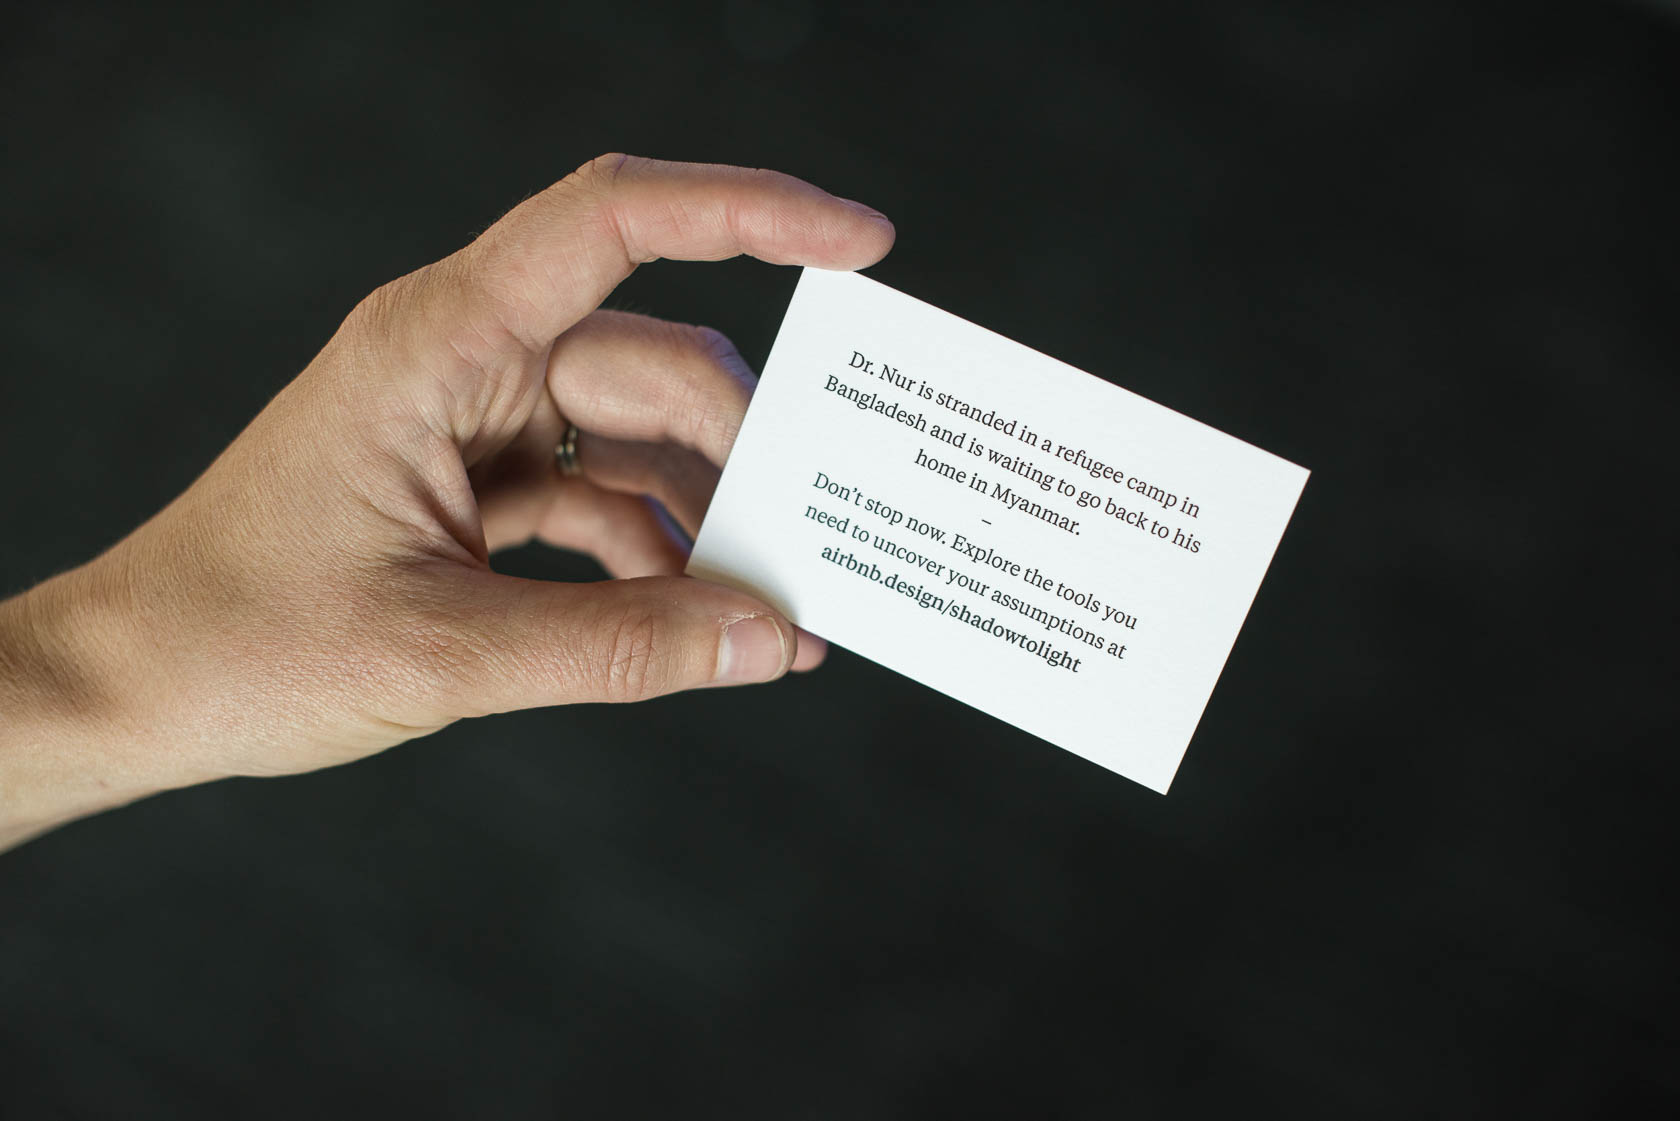 A hand holding a business card, which shares the story of a refugee and a link to airbnb.design/shadowtolight.